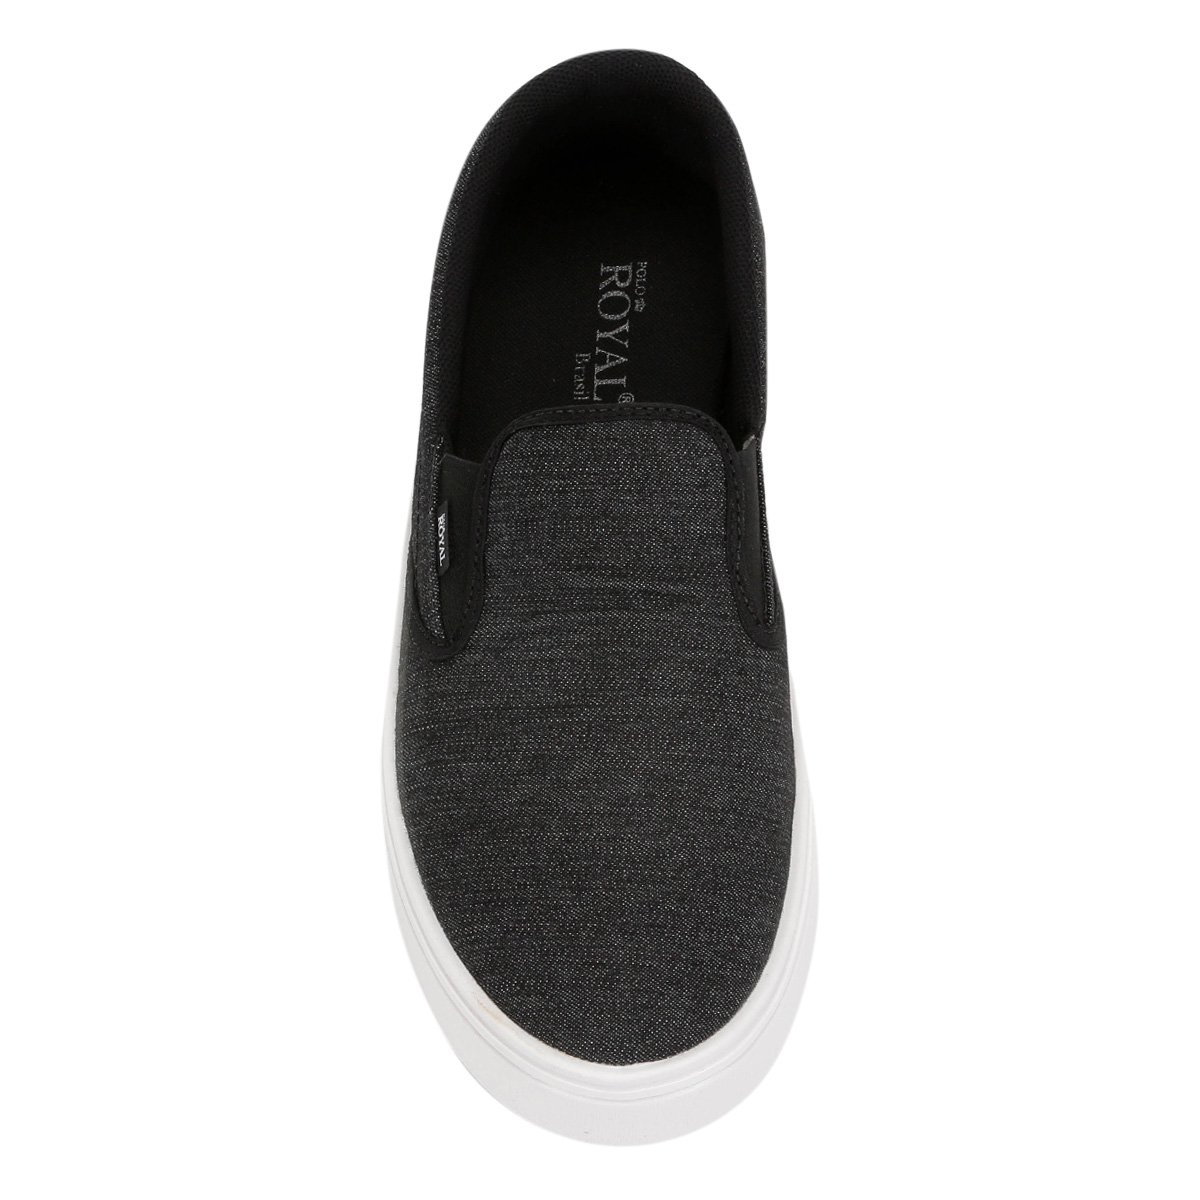 e Iate Royal Polo Lona Masculino Slip Preto Branco On wznHqxz0FS